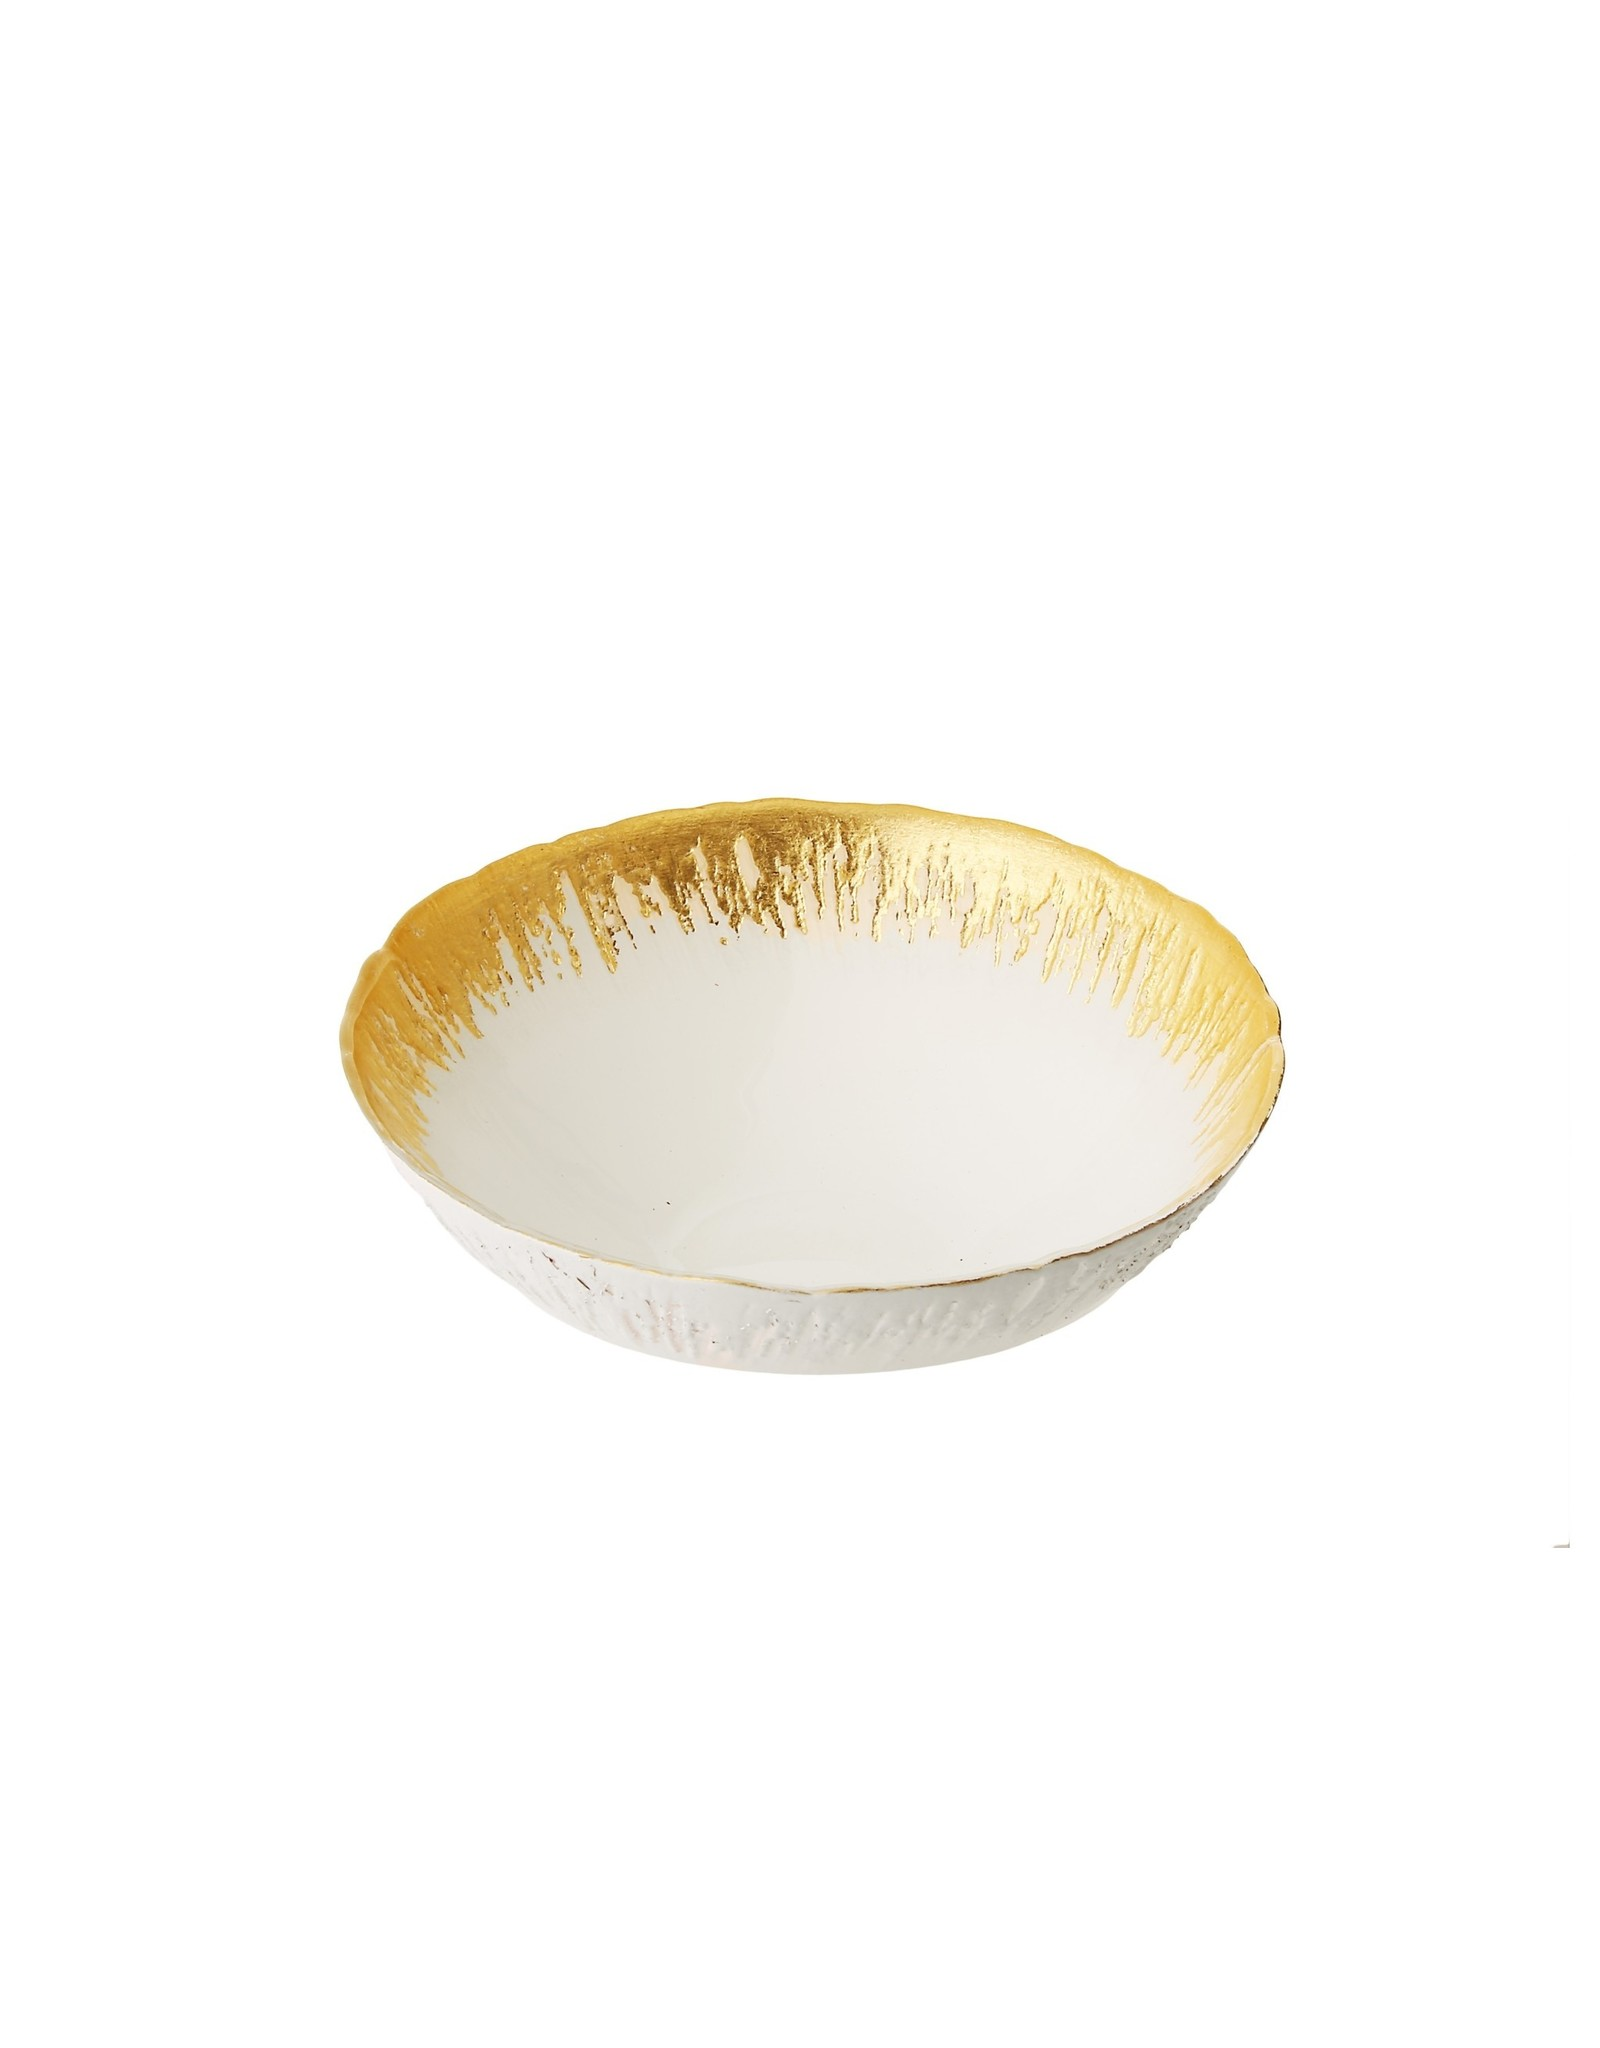 "Individual Opaque White Bowls with Flashy Gold Design-2.75""D"